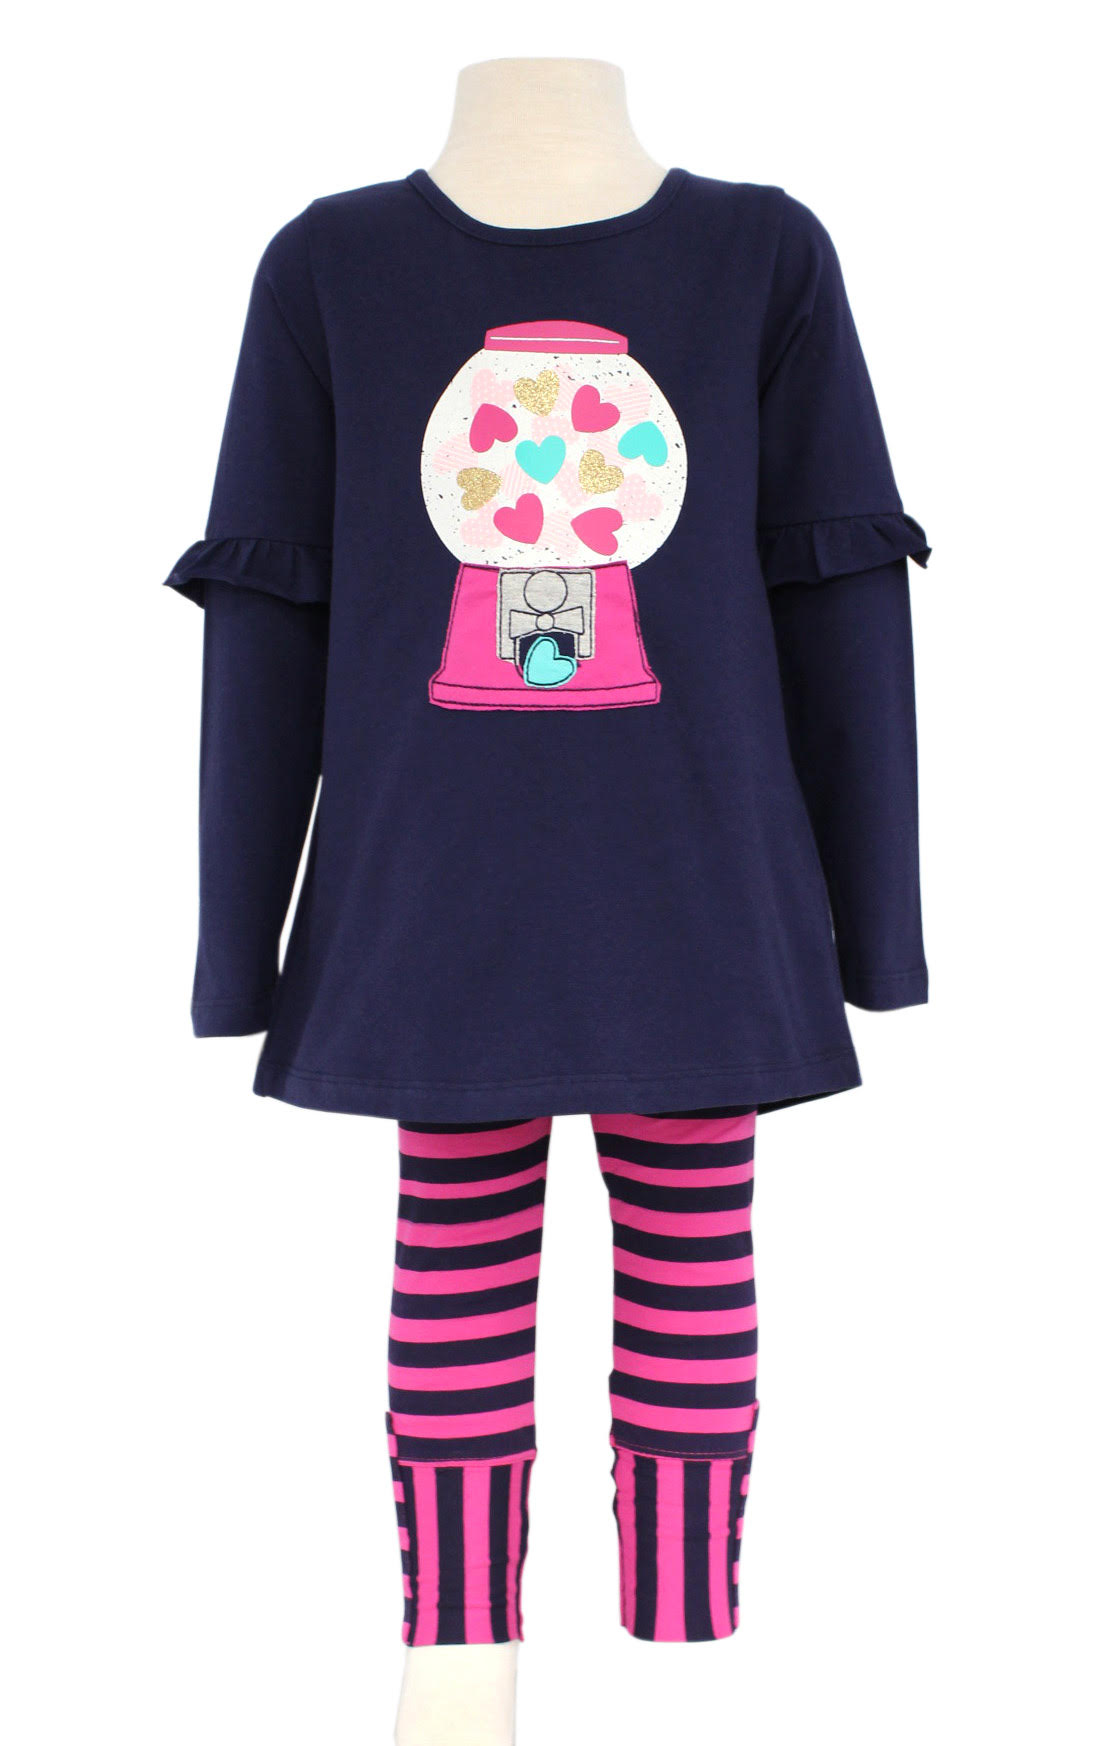 Gum Ball Tunic and Striped Legging |PREORDER|